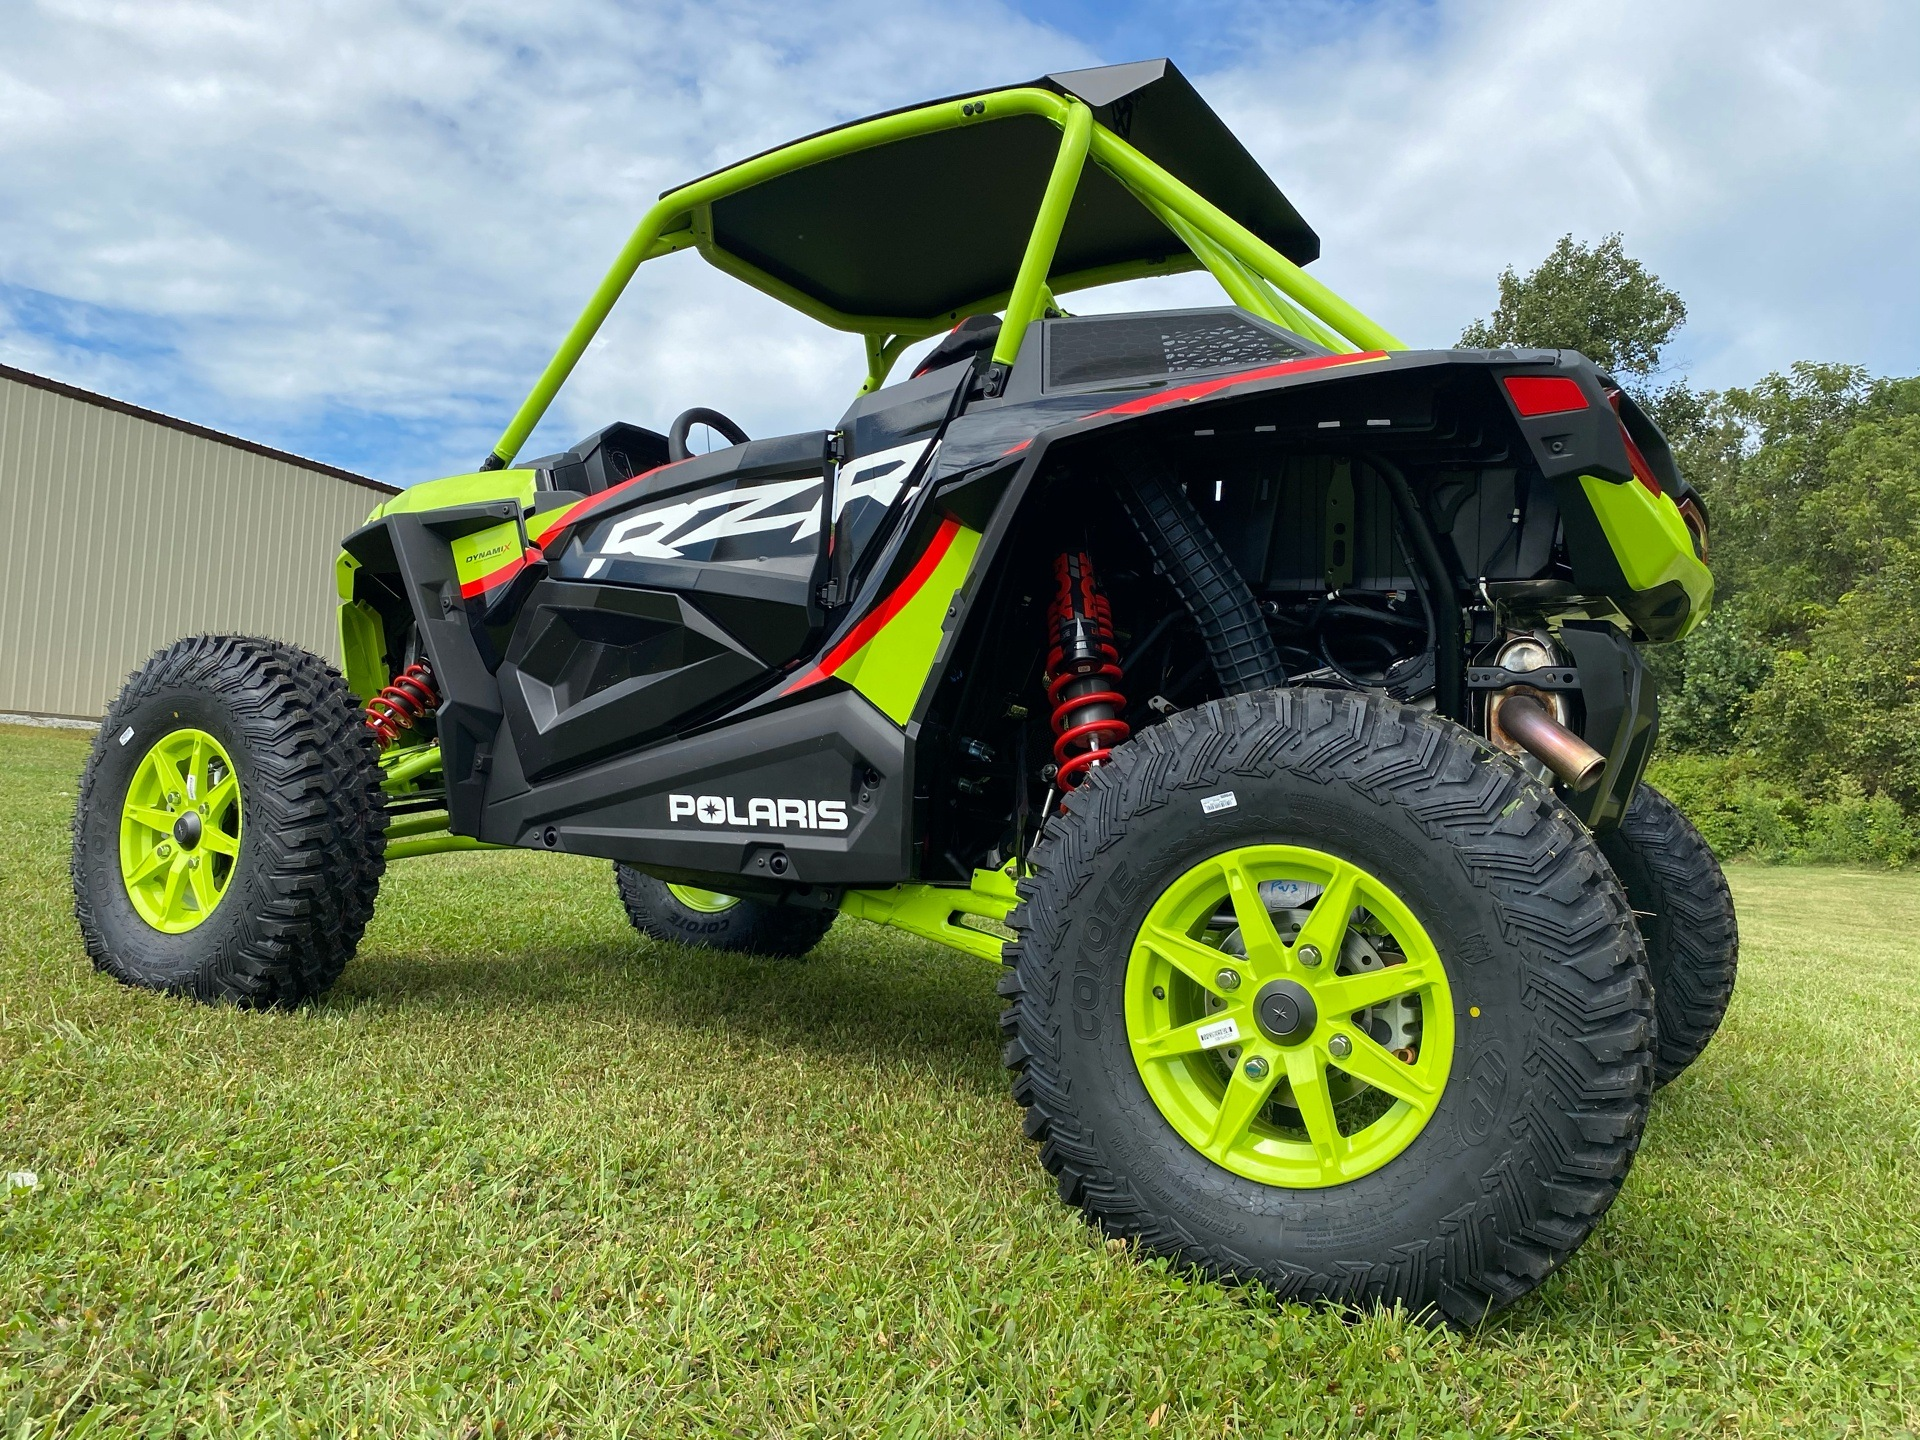 2021 Polaris RZR Turbo S Lifted Lime LE in Statesville, North Carolina - Photo 5